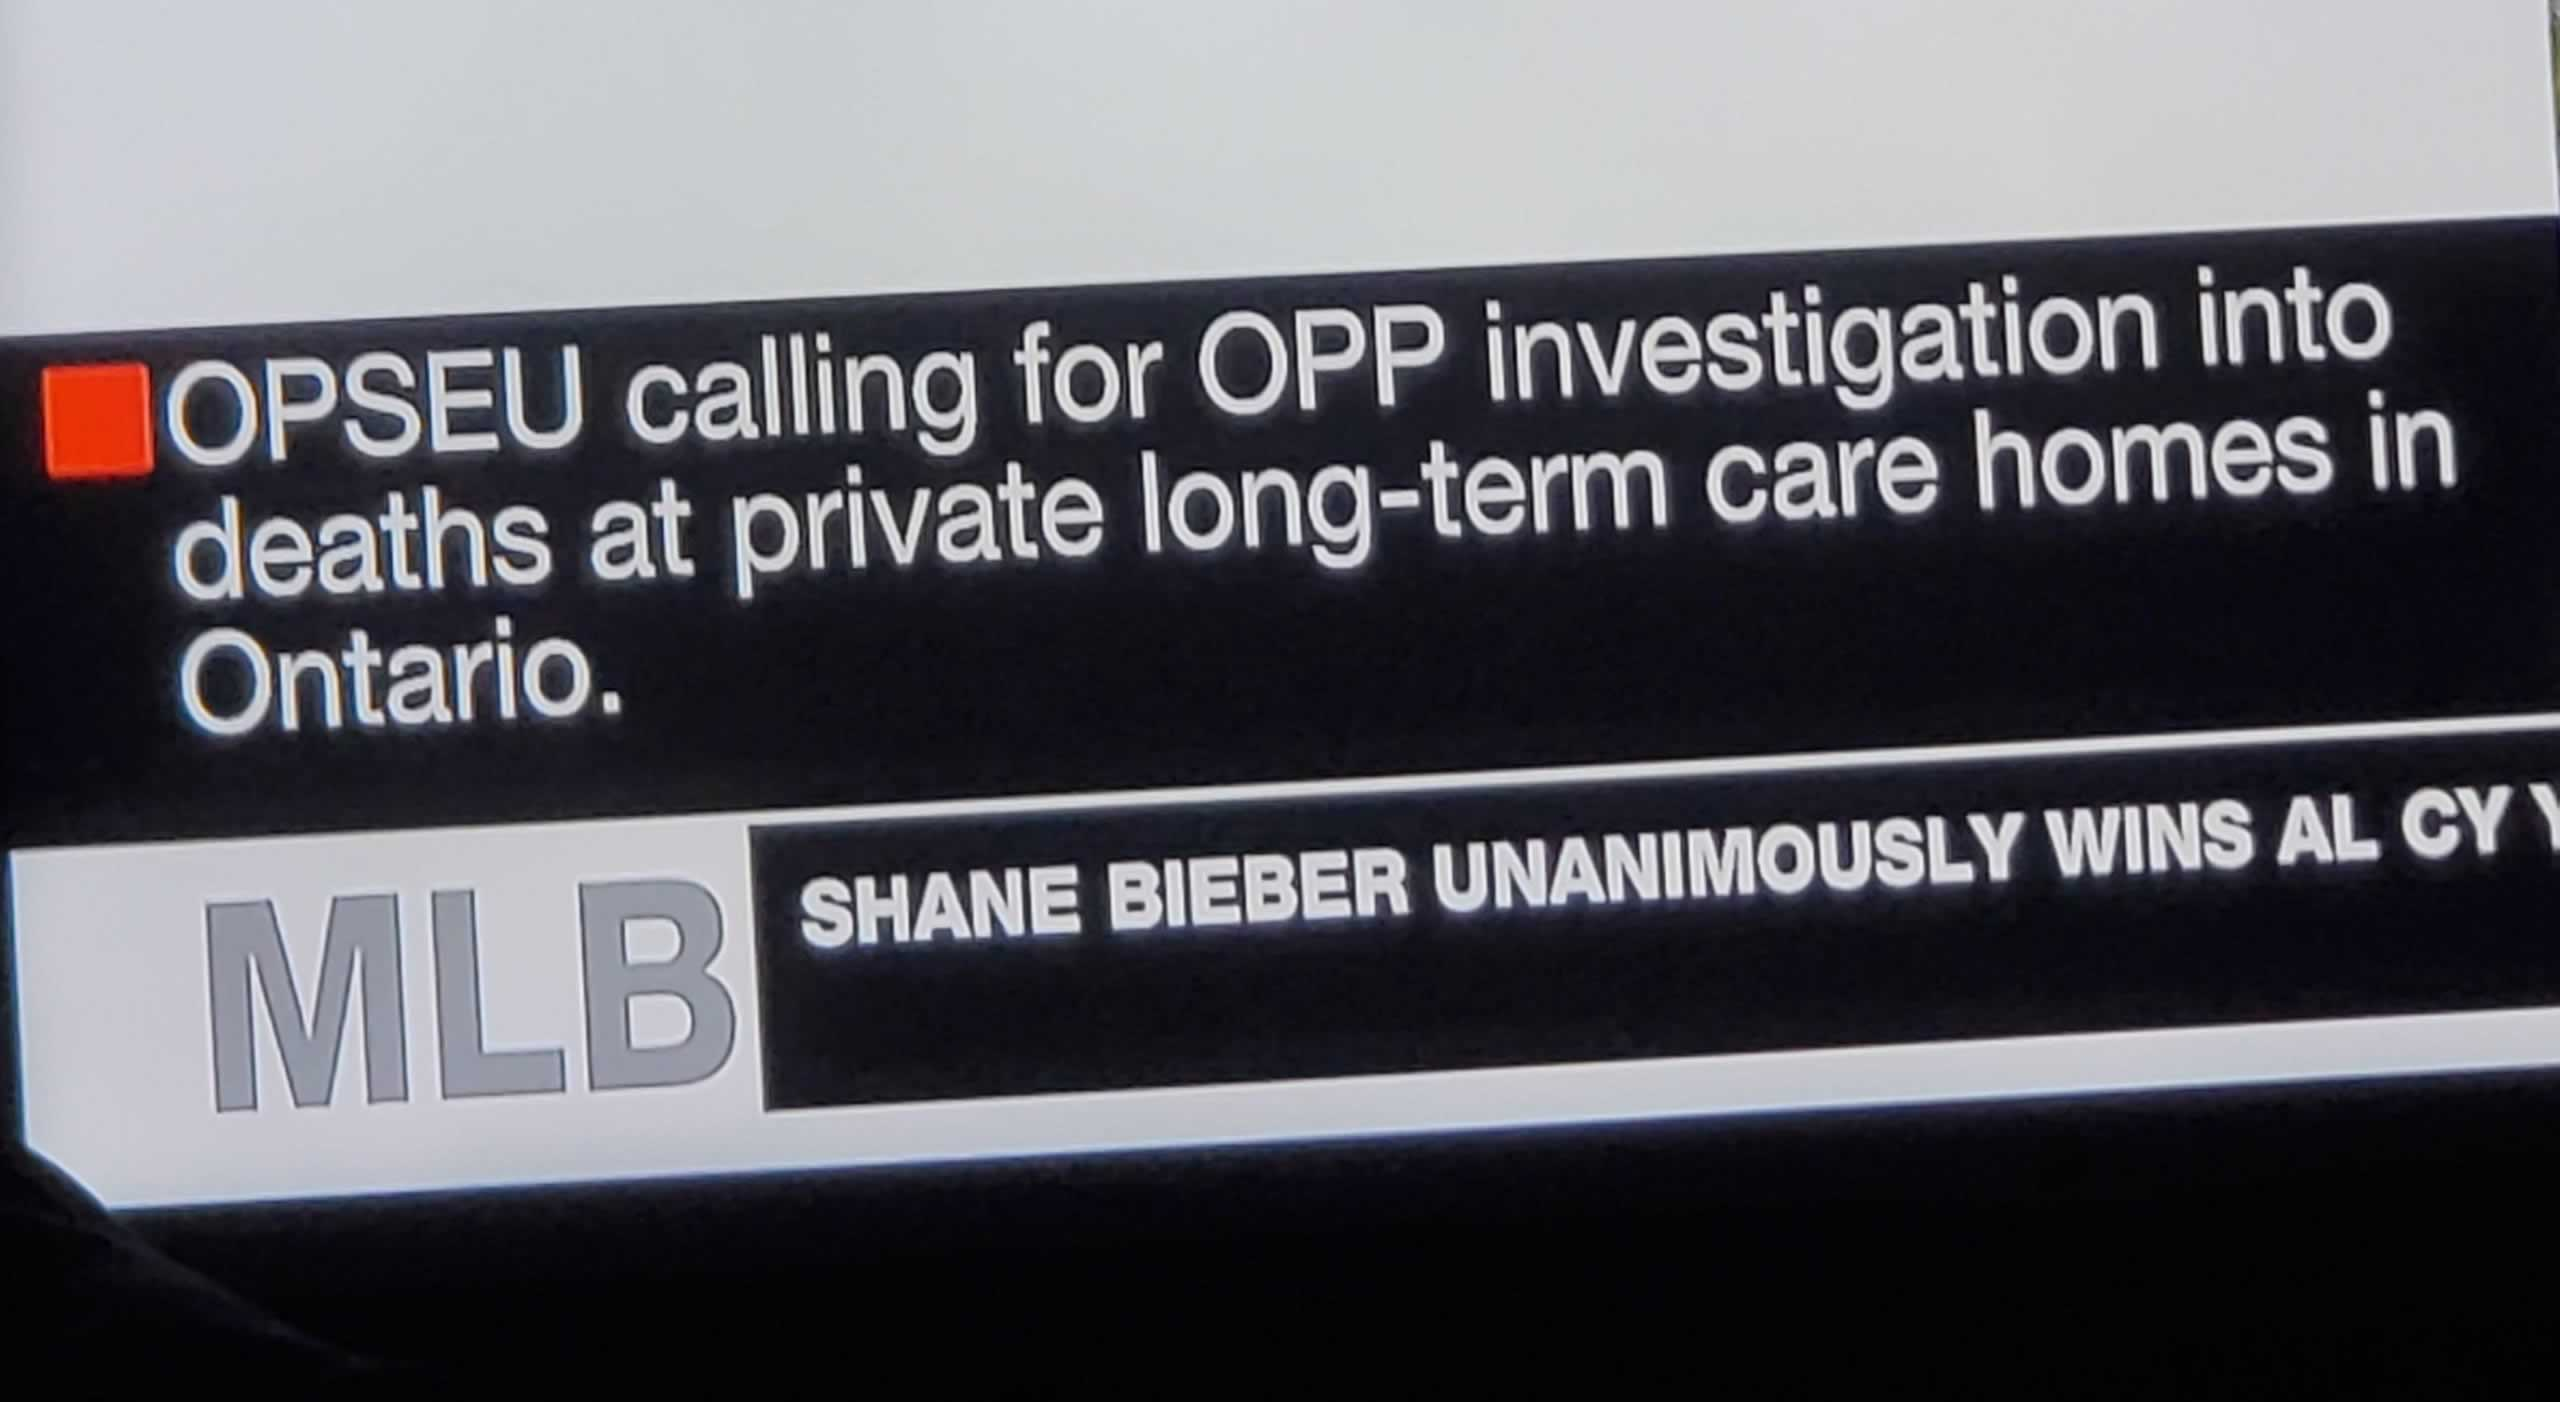 CP24 headline: OPSEU calling for OPP investigation